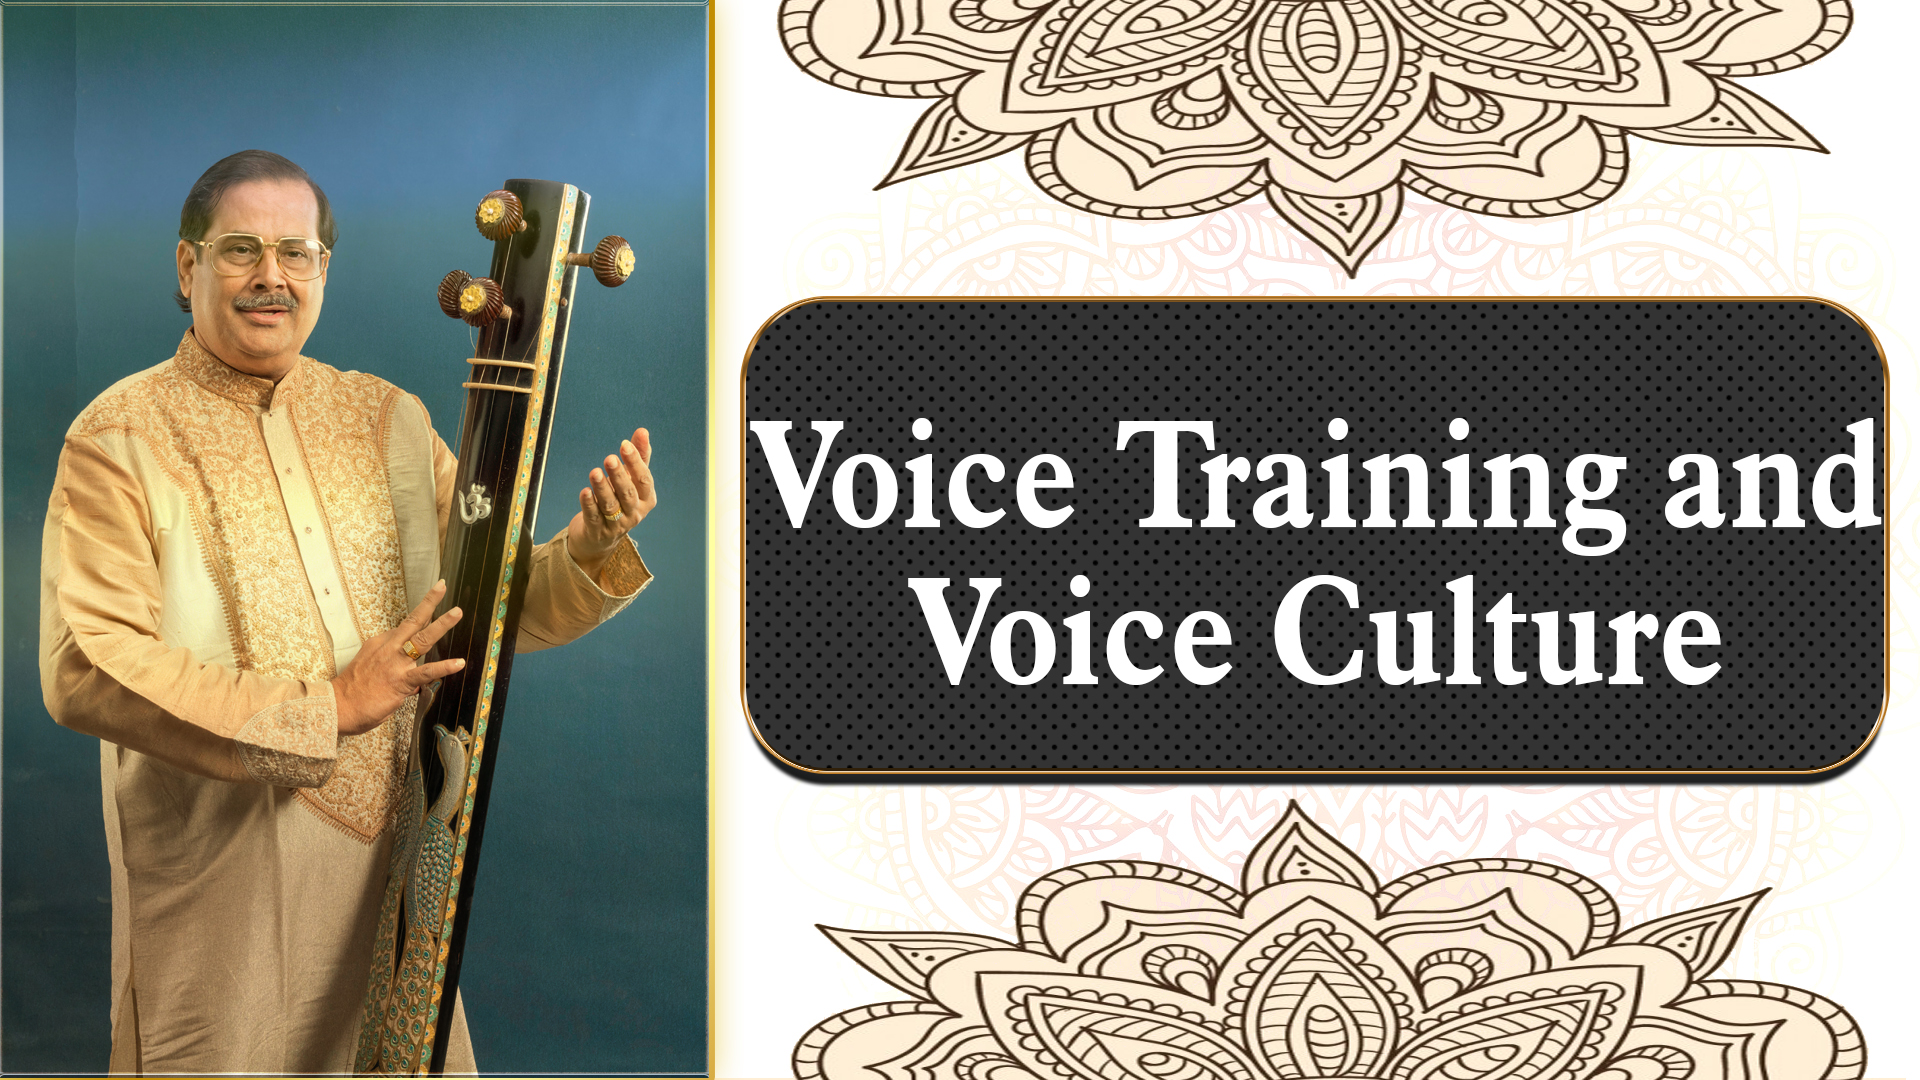 12- Voice Training and Voice Culture and what's needed to practiced.